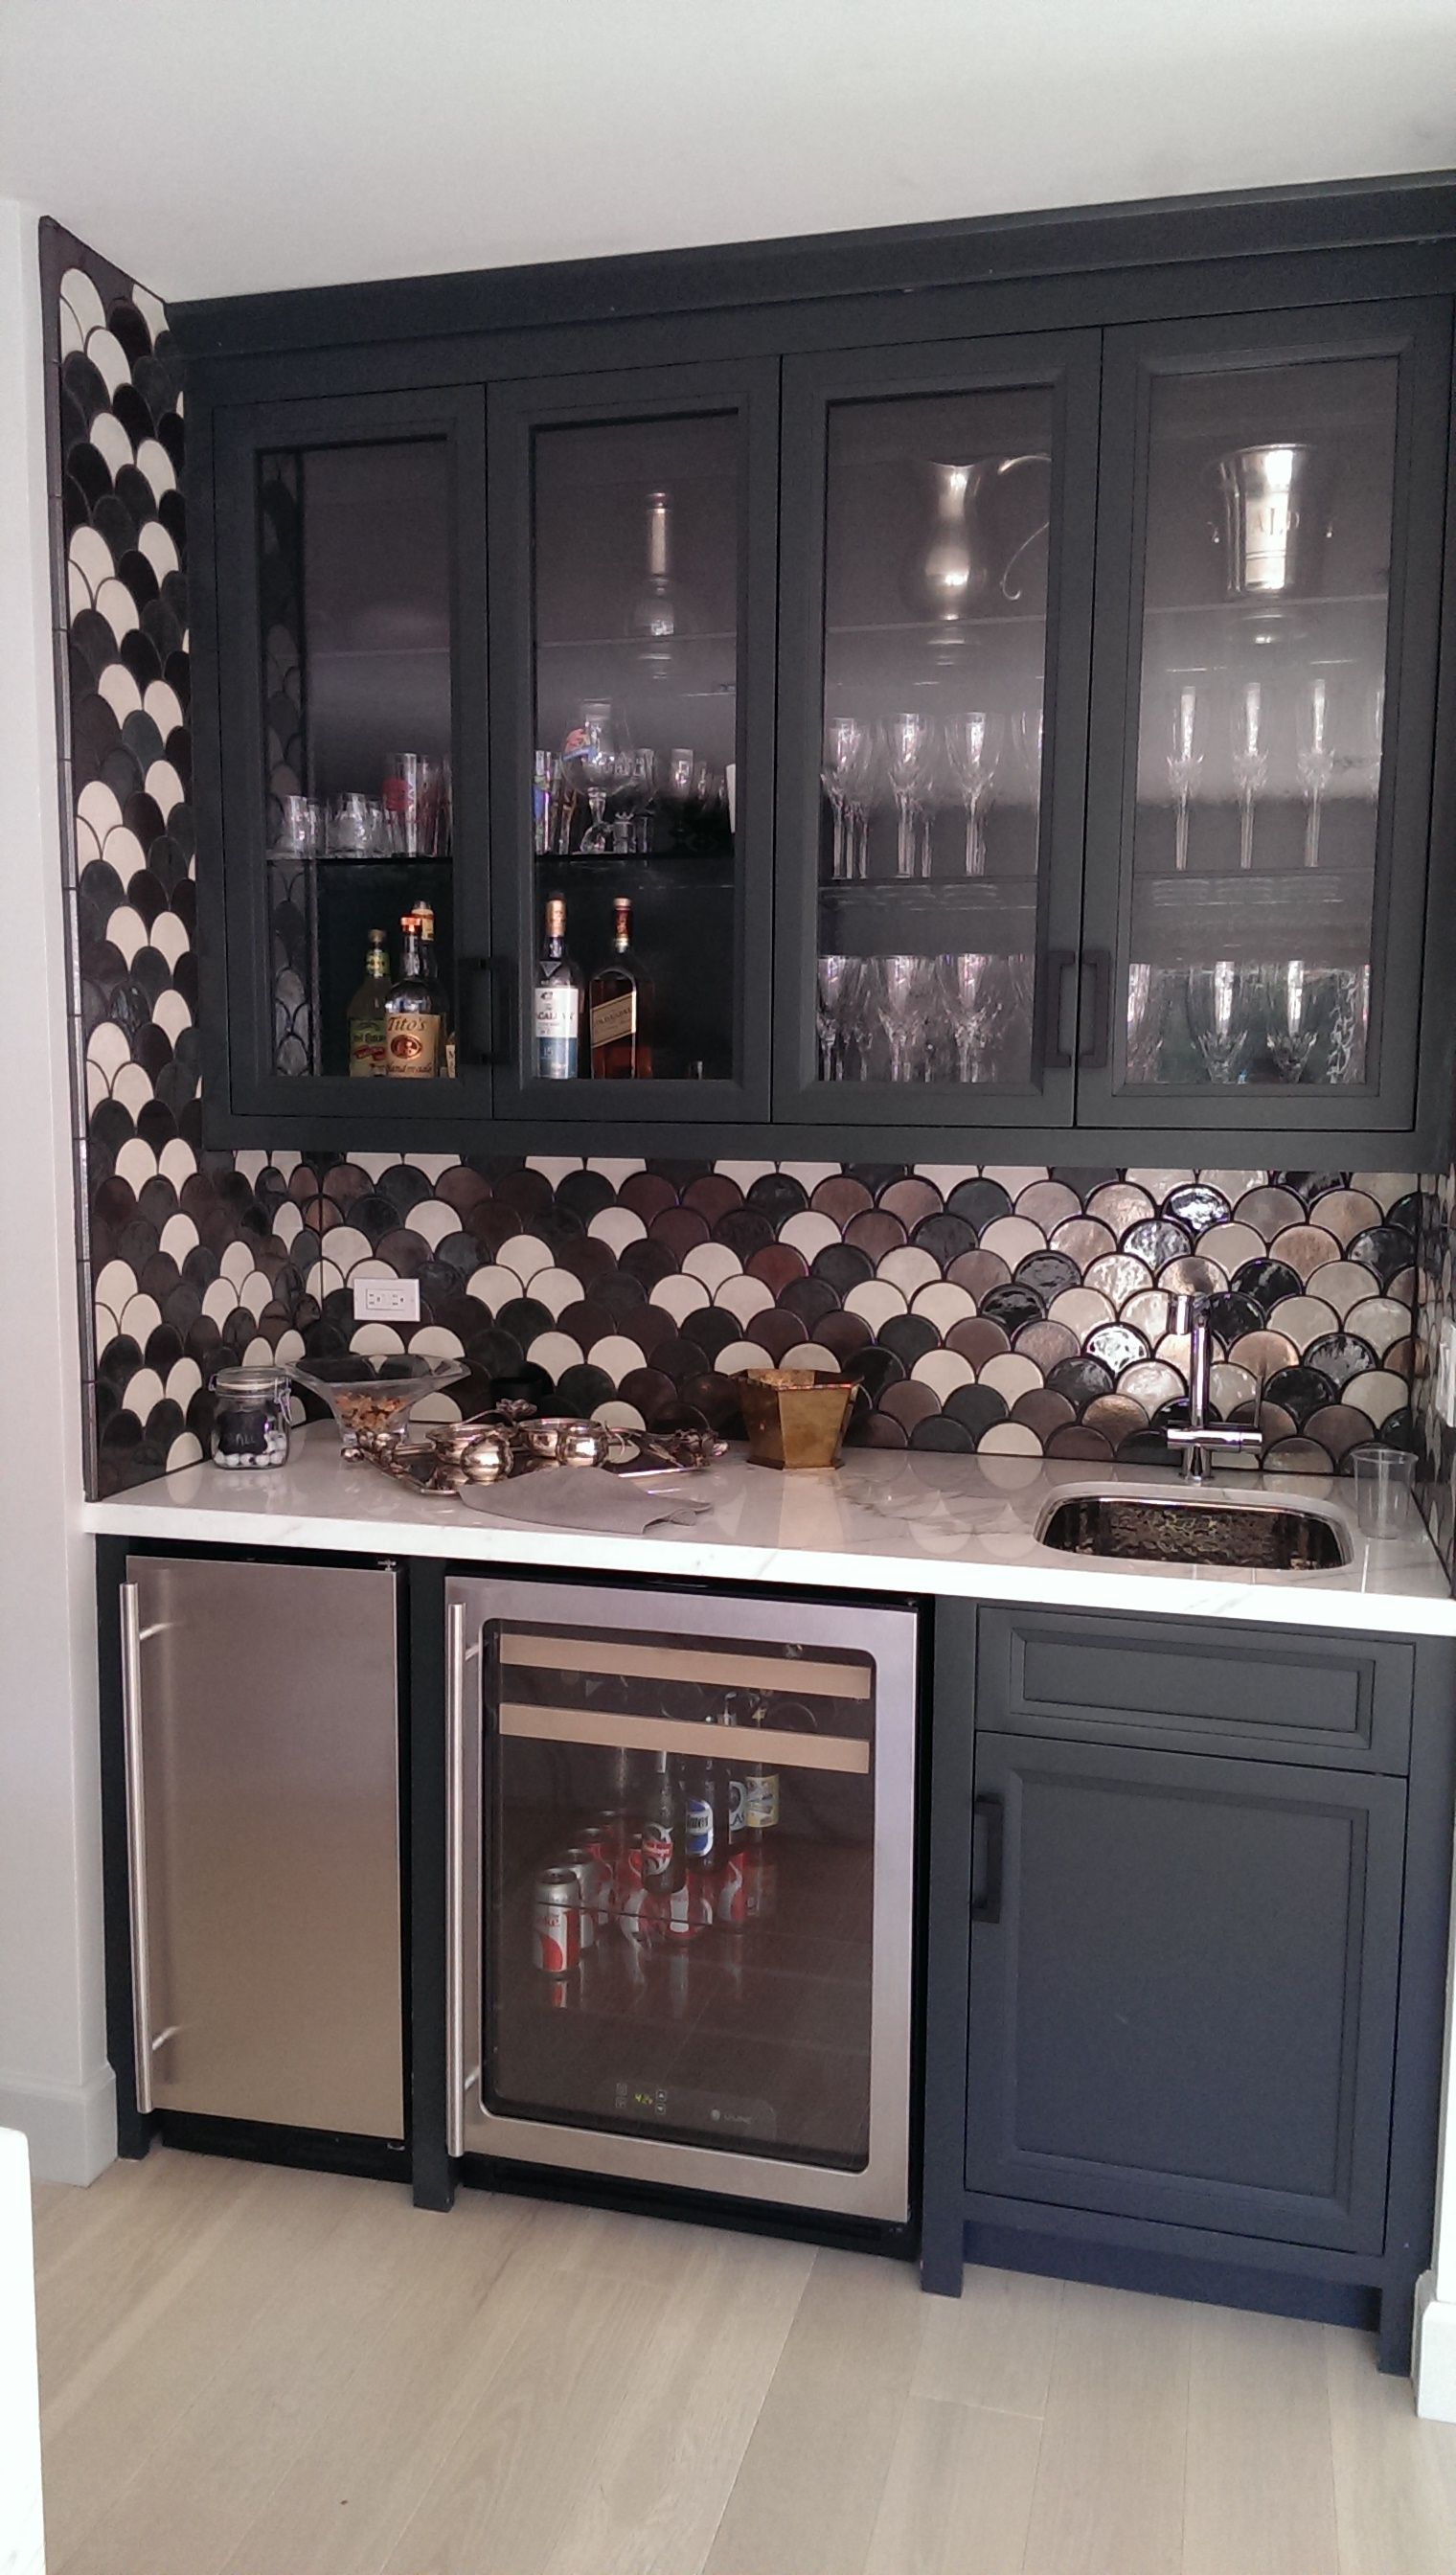 Custom Built In Wet Bar With A Sink Fridge And Freezer Wet Bar Basement Wet Bar Designs Wet Bar Sink